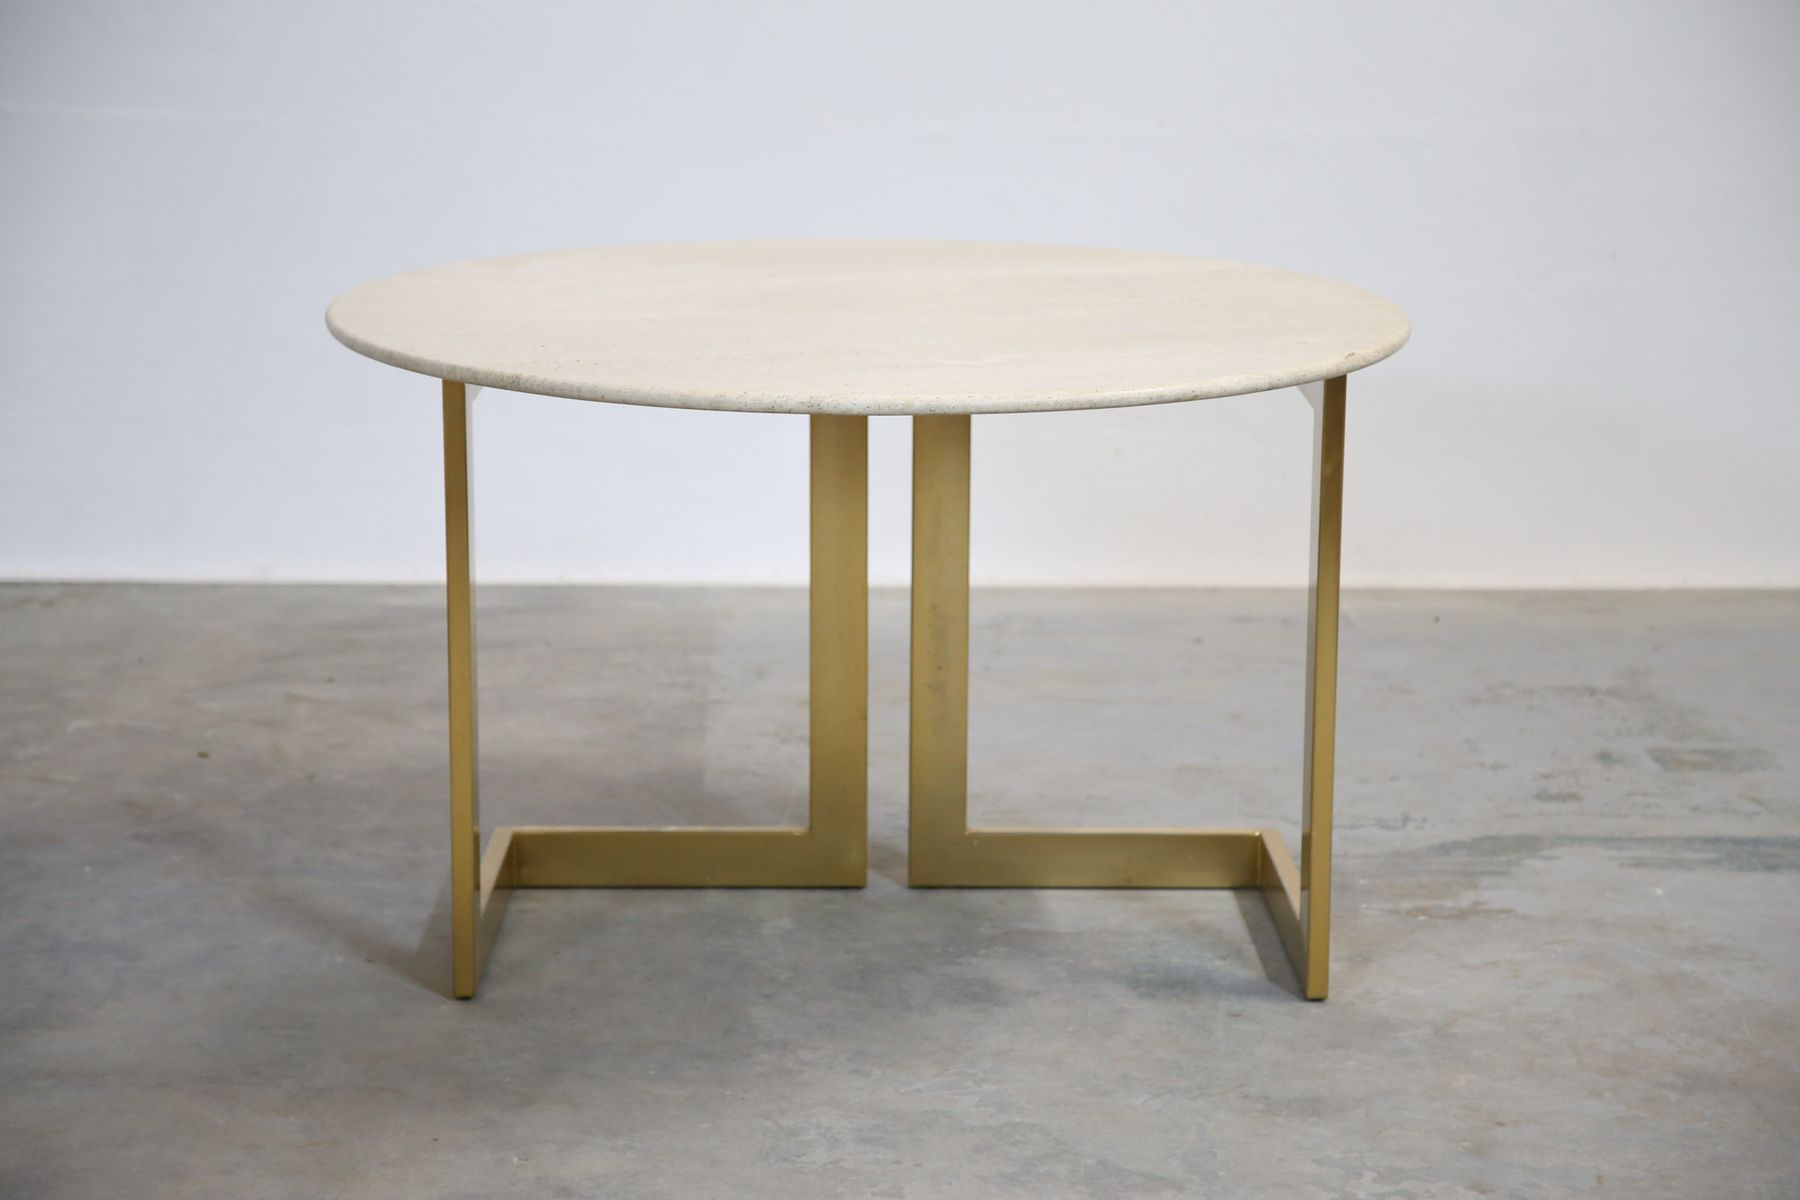 vintage italian travertine round dining table 1970s for sale at pamono. Black Bedroom Furniture Sets. Home Design Ideas